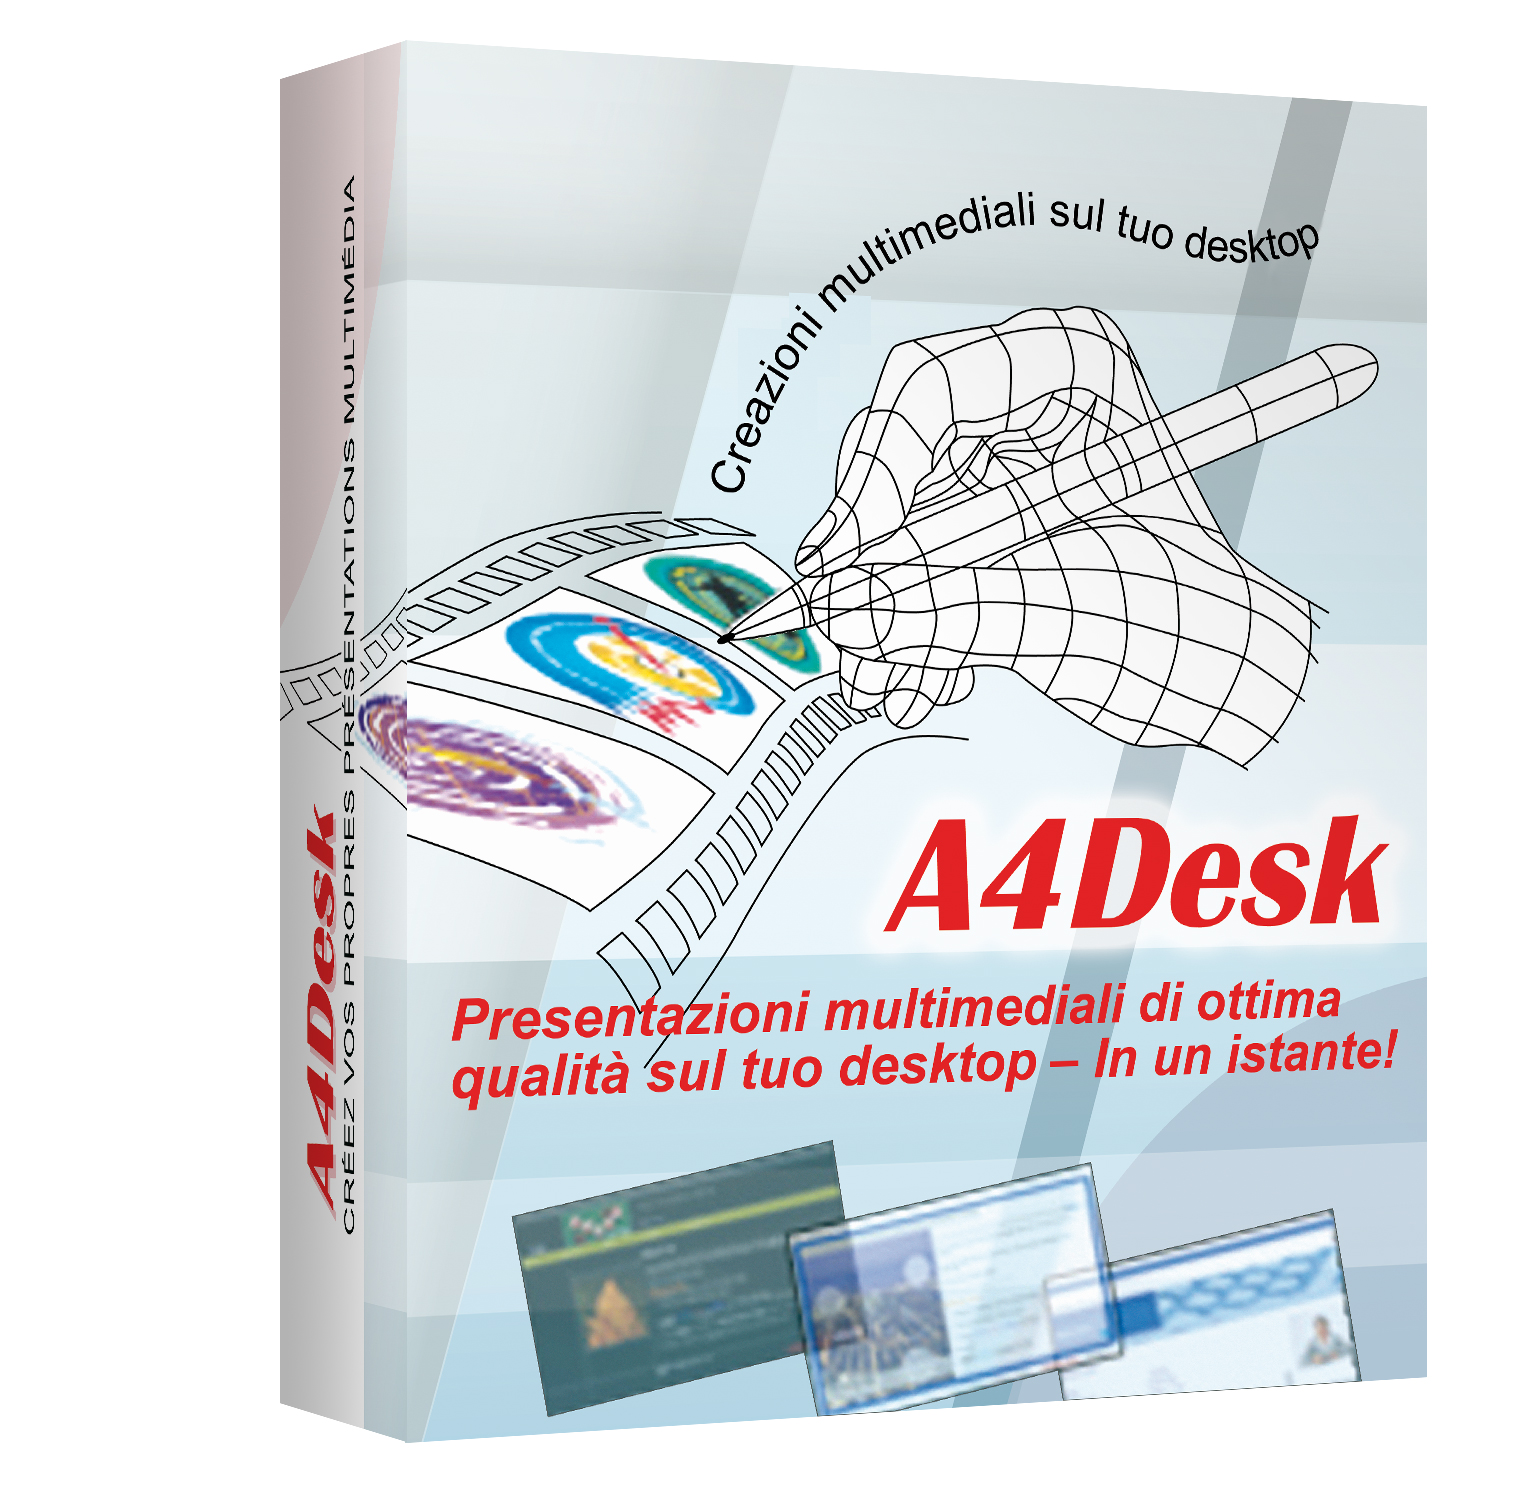 A4Desk Home Edition